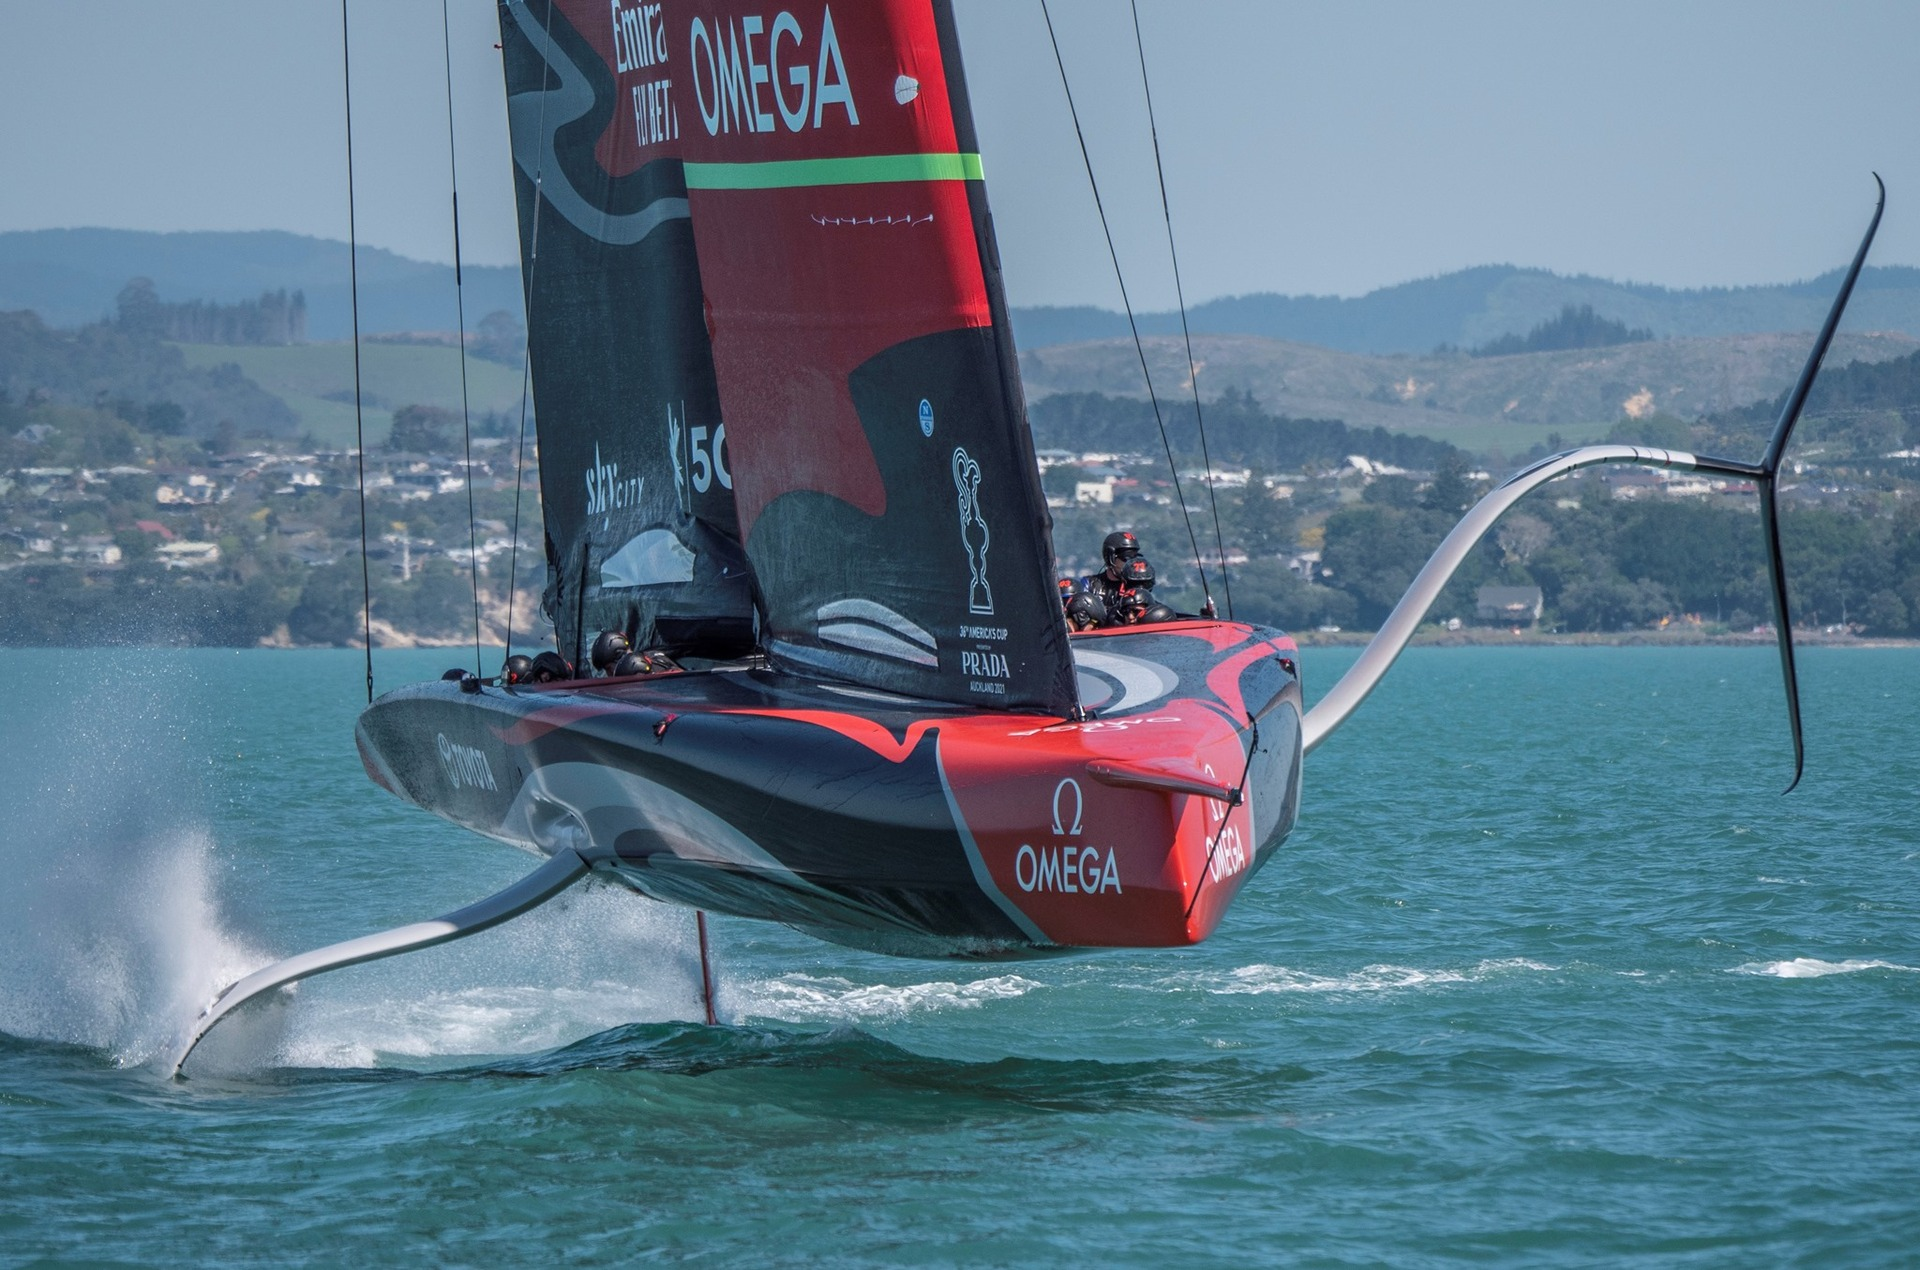 Team NZ's amazing gravity-defying act caught on camera